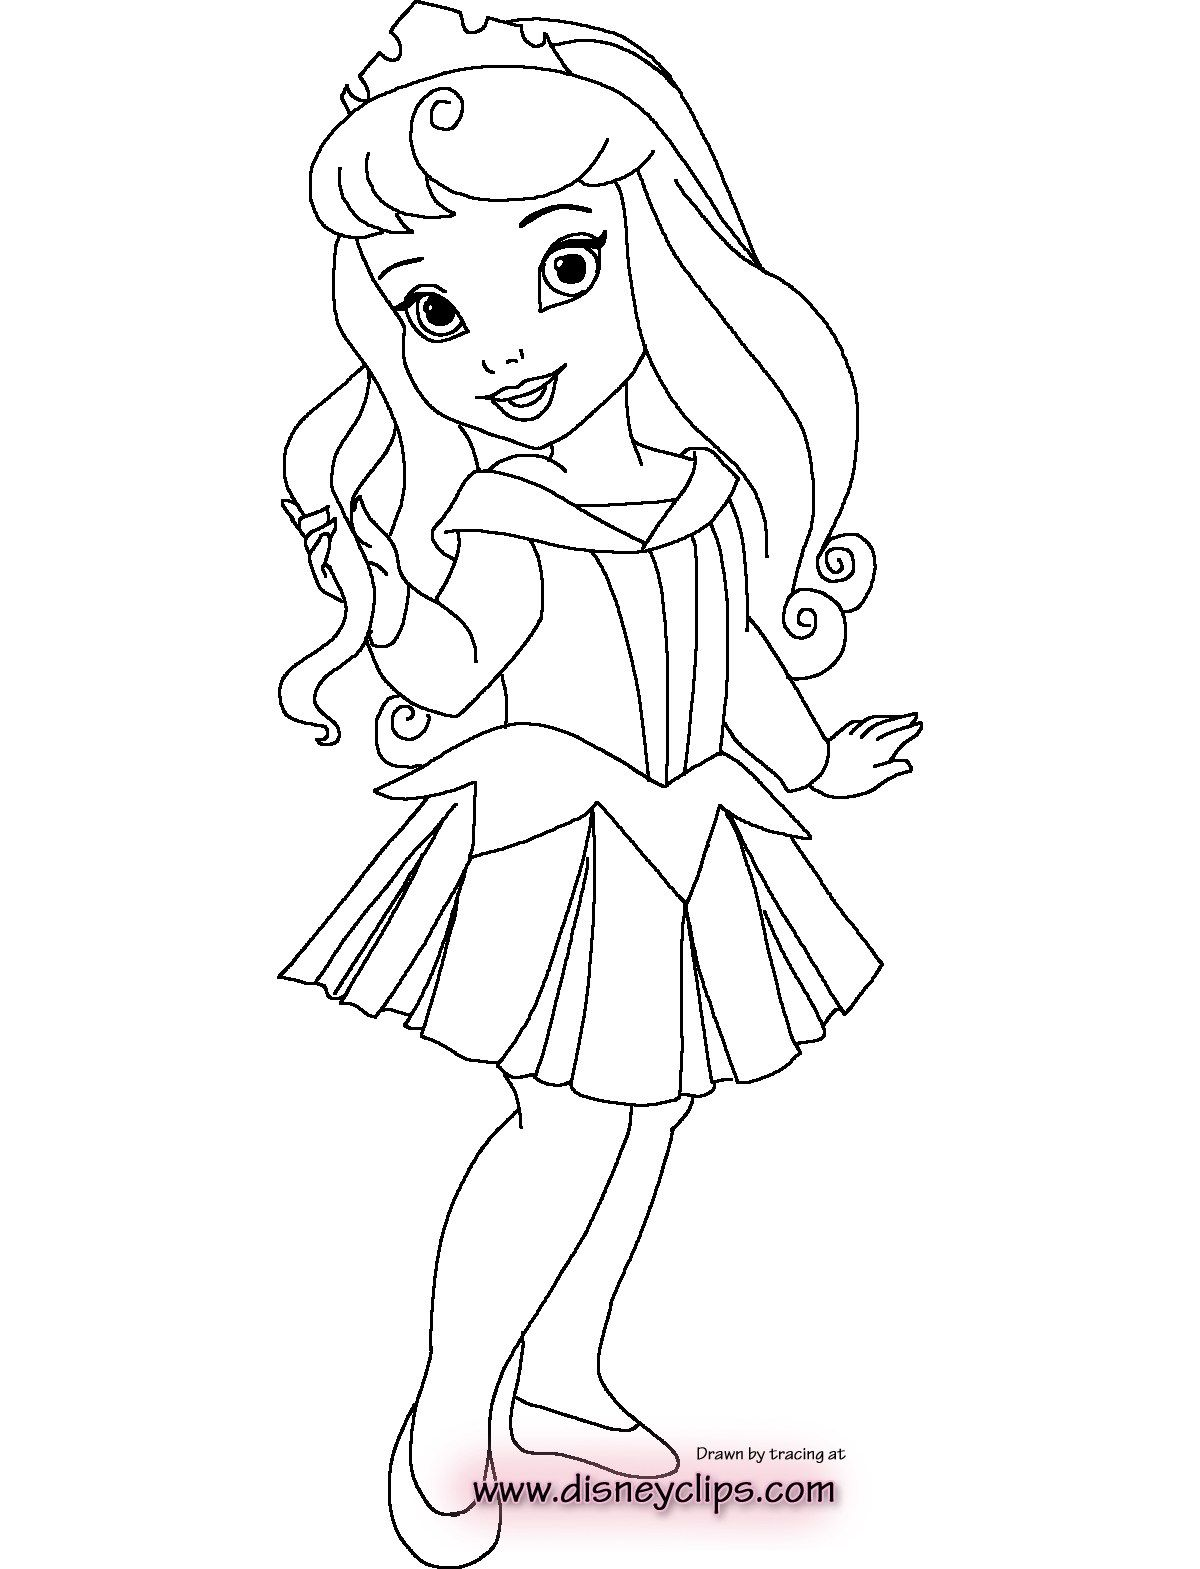 22 Great Photo Of Belle Coloring Pages Davemelillo Com Disney Princess Coloring Pages Princess Coloring Pages Mermaid Coloring Pages